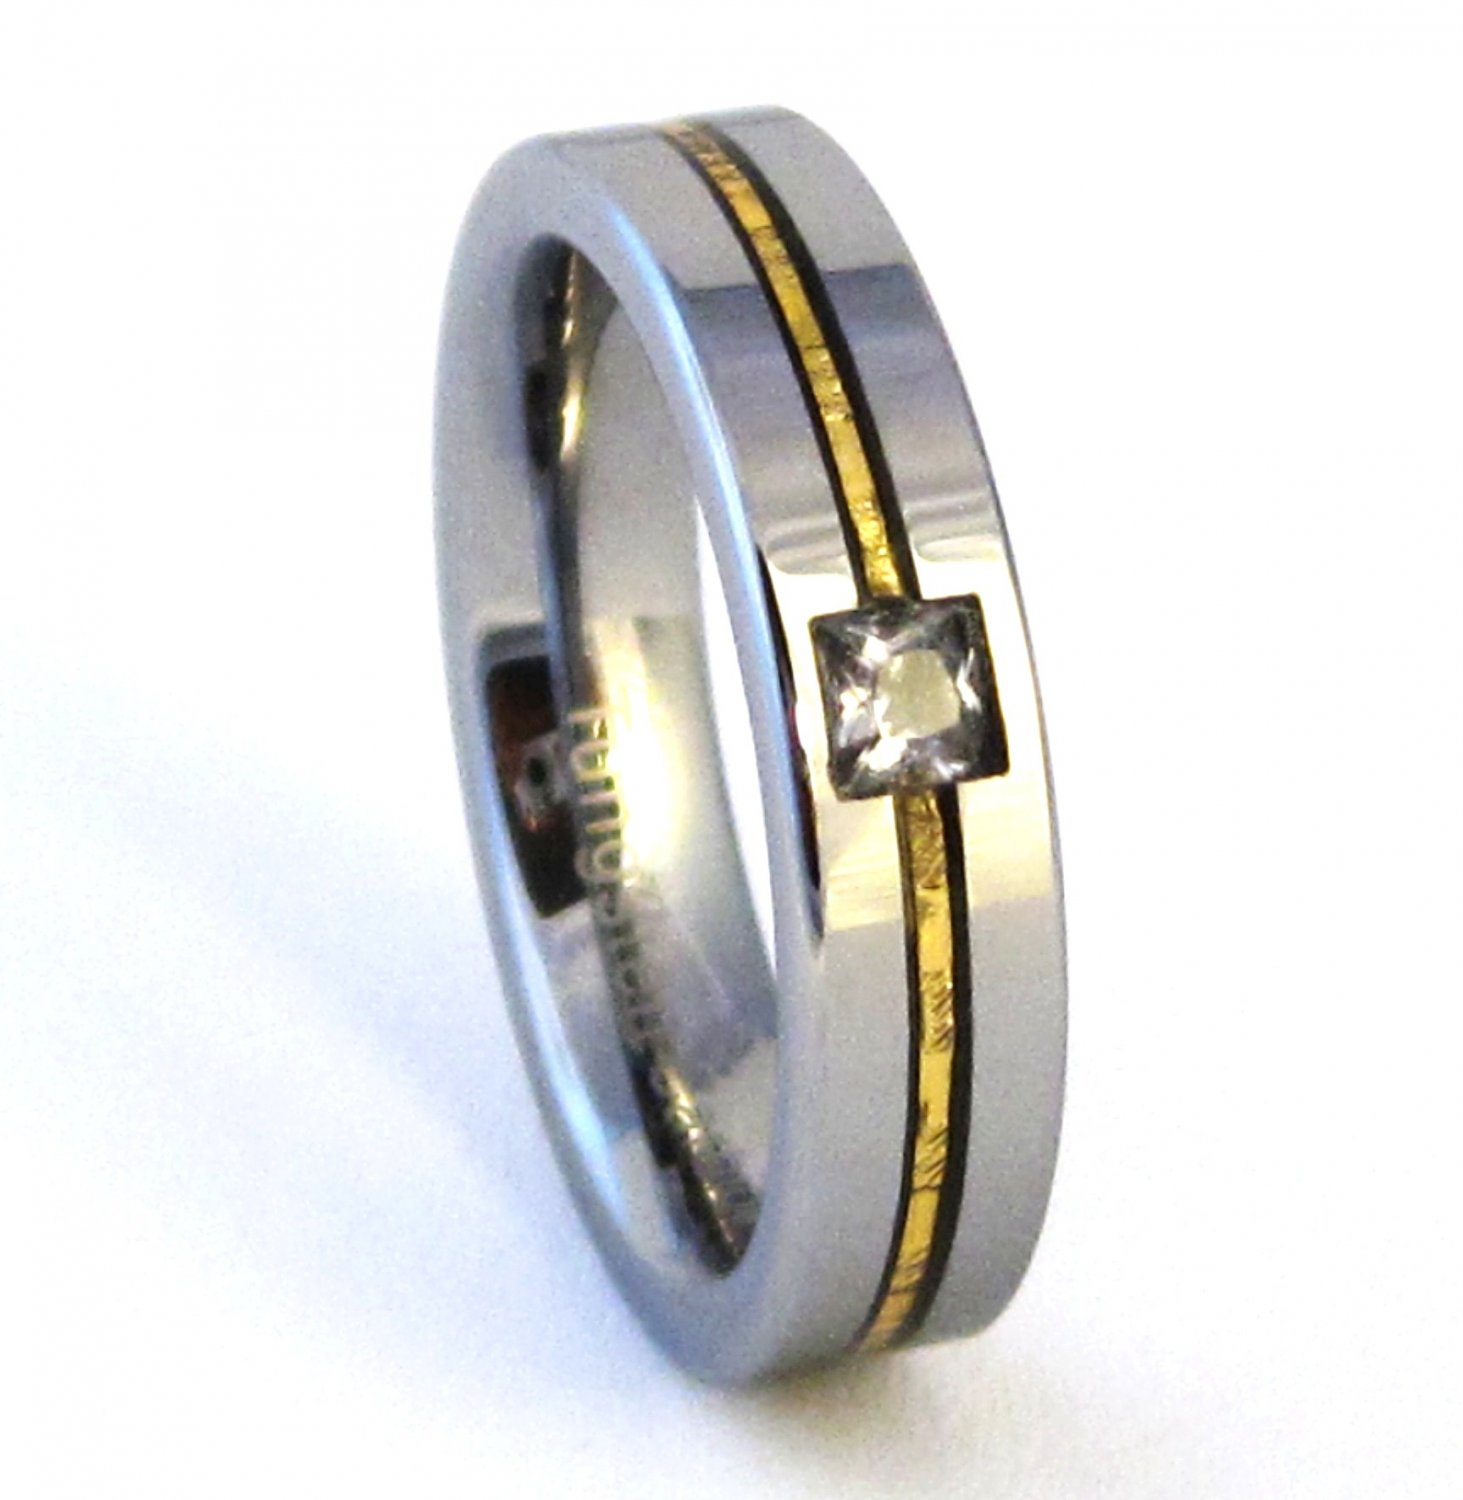 Unisex Square CZ Gold Stripe Tungsten Carbide Wedding Band Ring TU6001 Sz 5 to 14